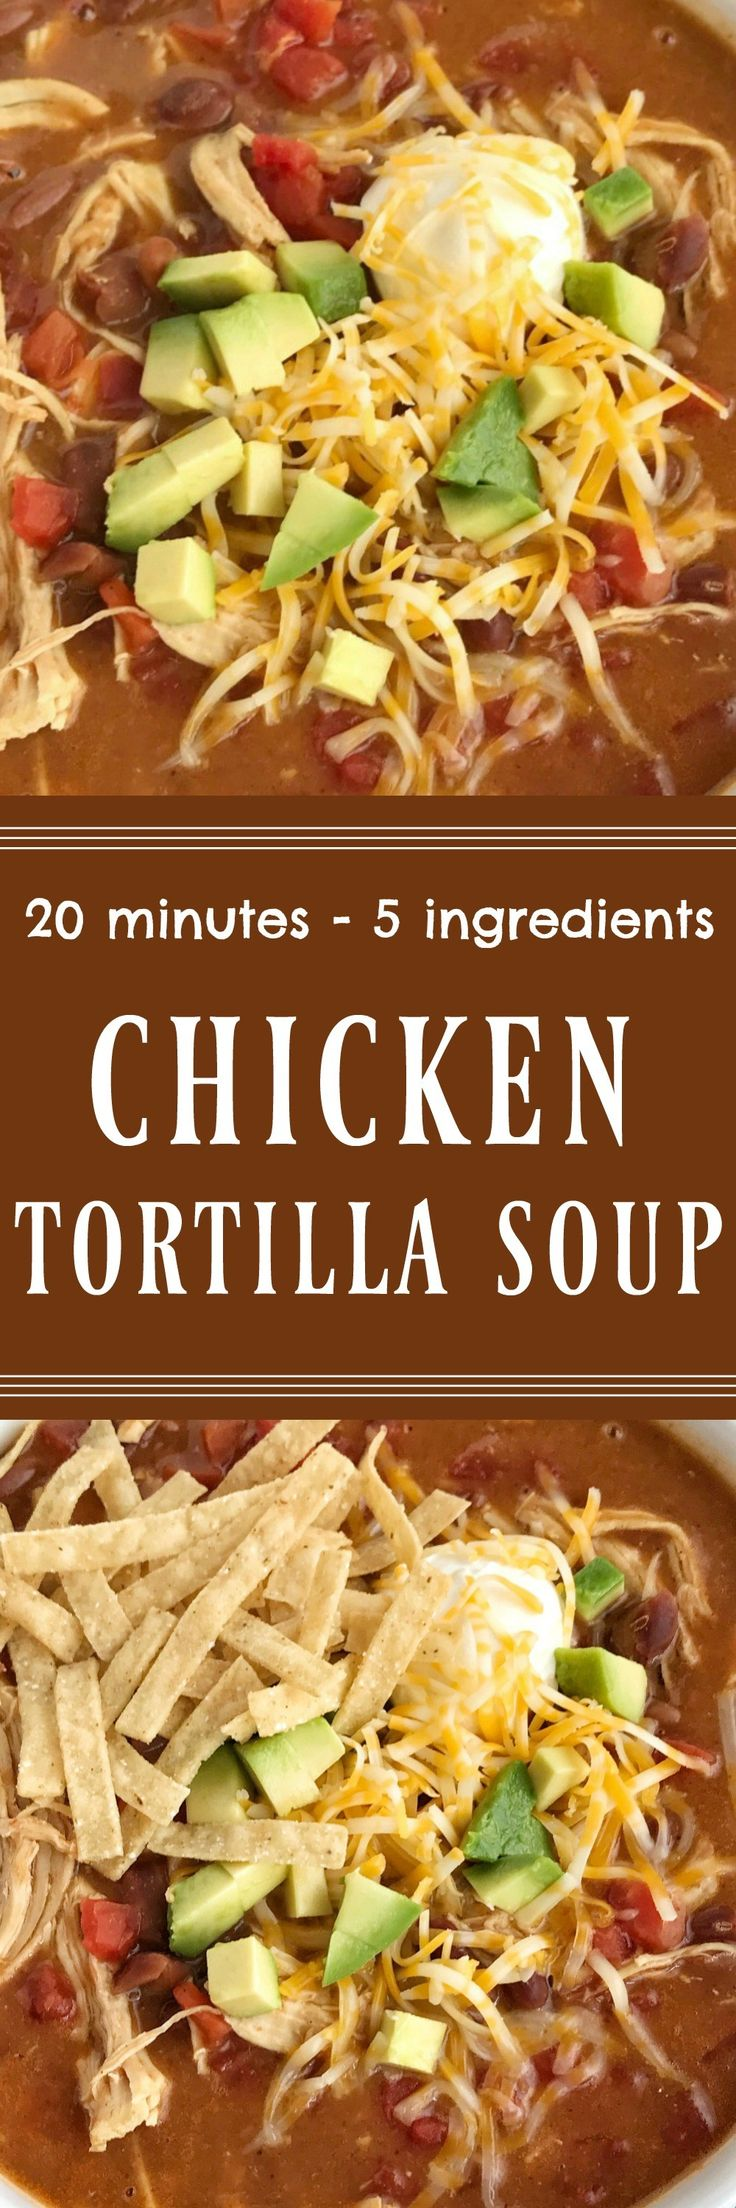 Chicken Tortilla Soup Recipe   The best 5 ingredient chicken tortilla soup only takes 20 minutes to make! One pot is all you need for this delicious and creamy tortilla soup. Combine 5 ingredients   some spices and let it simmer on the stove top. Top with cheese, avocado, chips, and sour cream.